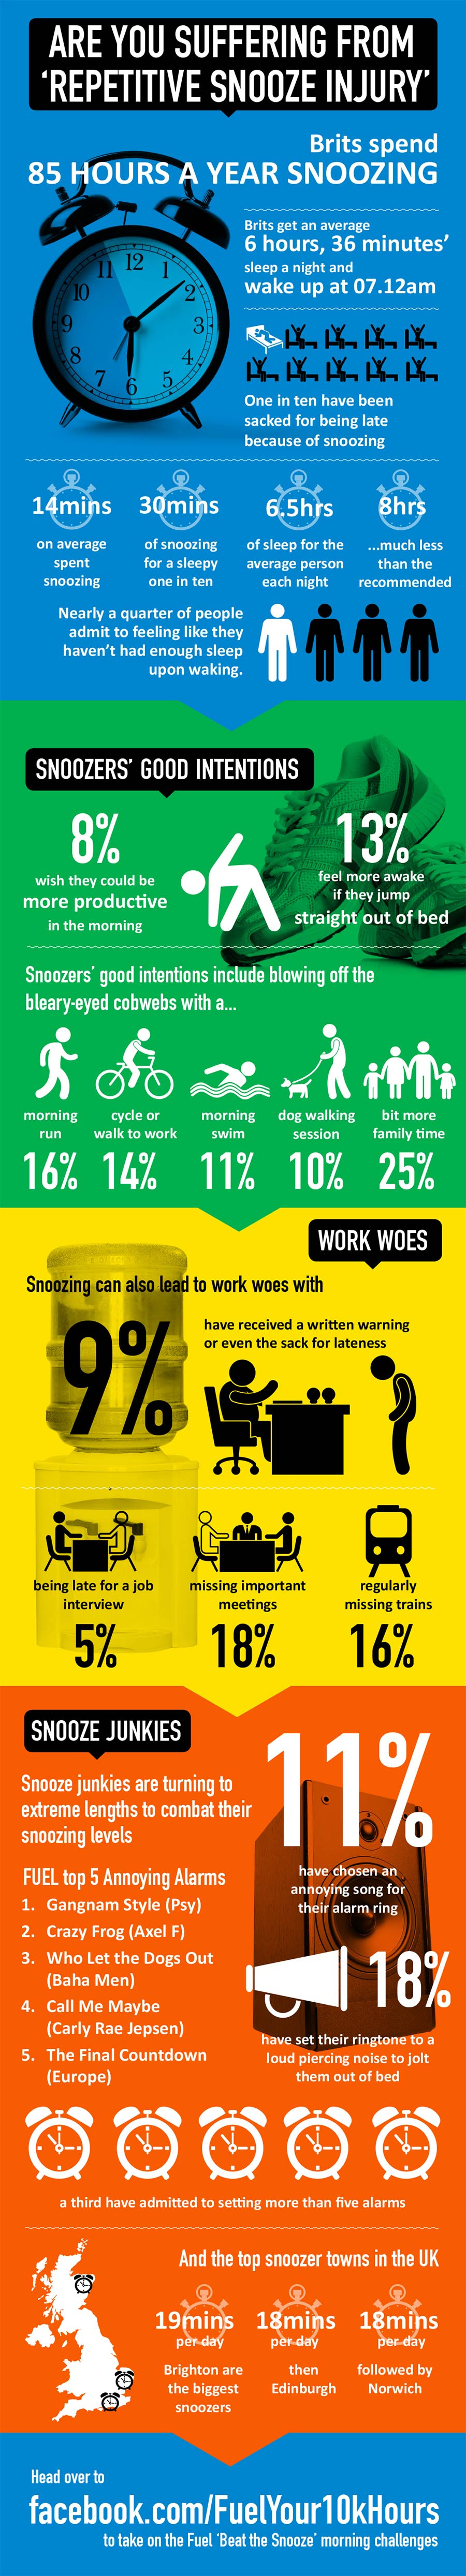 Infographic: Are You Suffering From Repetitive Snooze Injury